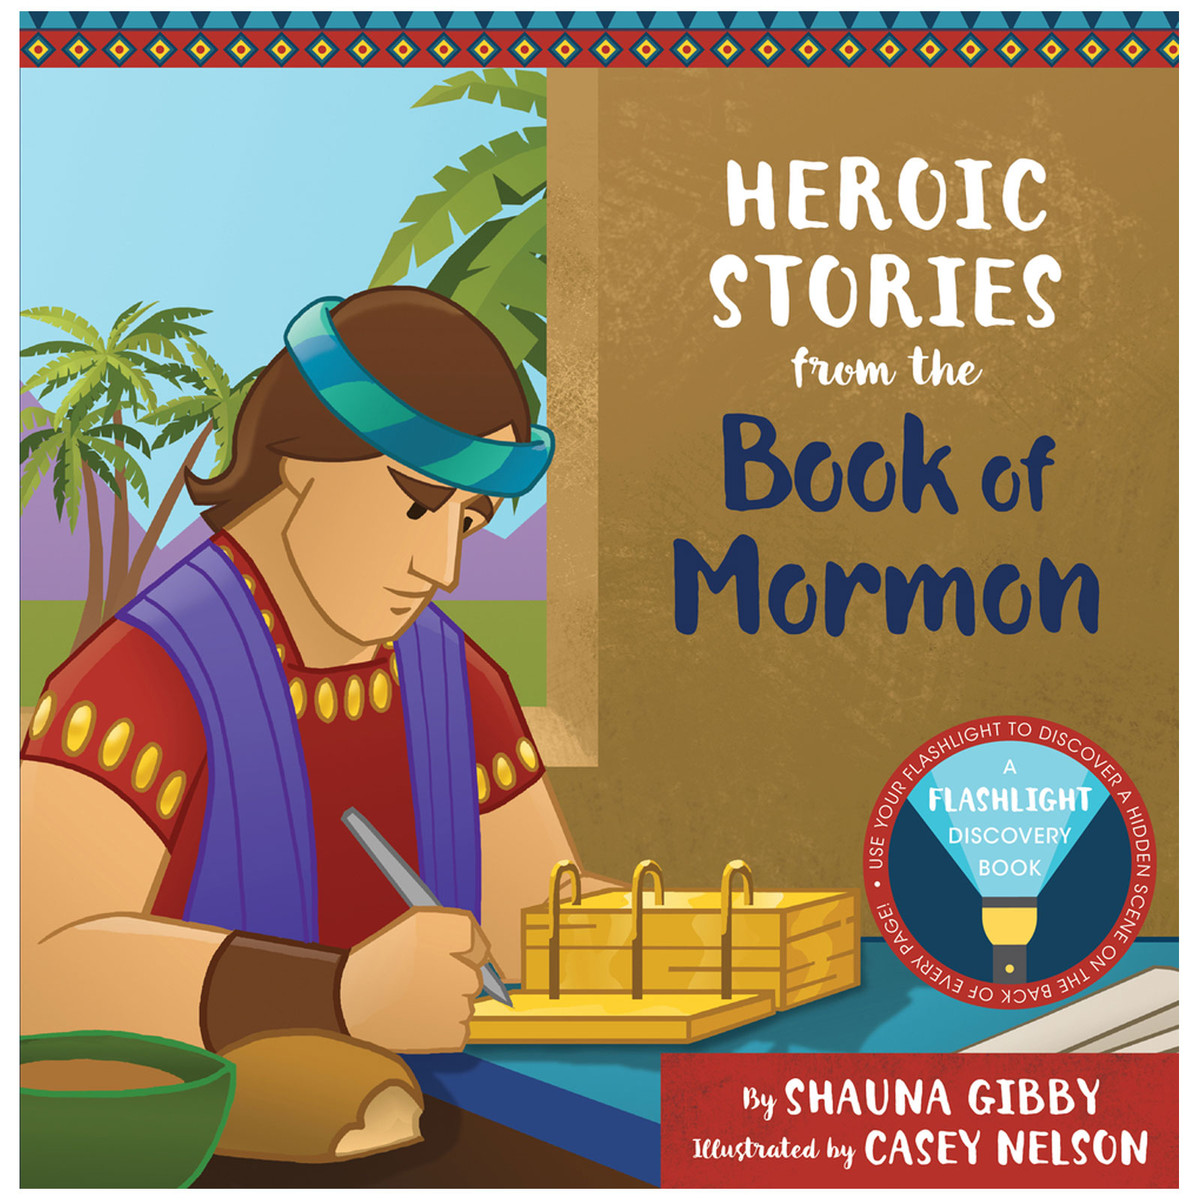 Heroic Stories From The Book Of Mormon By Shauna Gibby Illustrated Casey Nelson